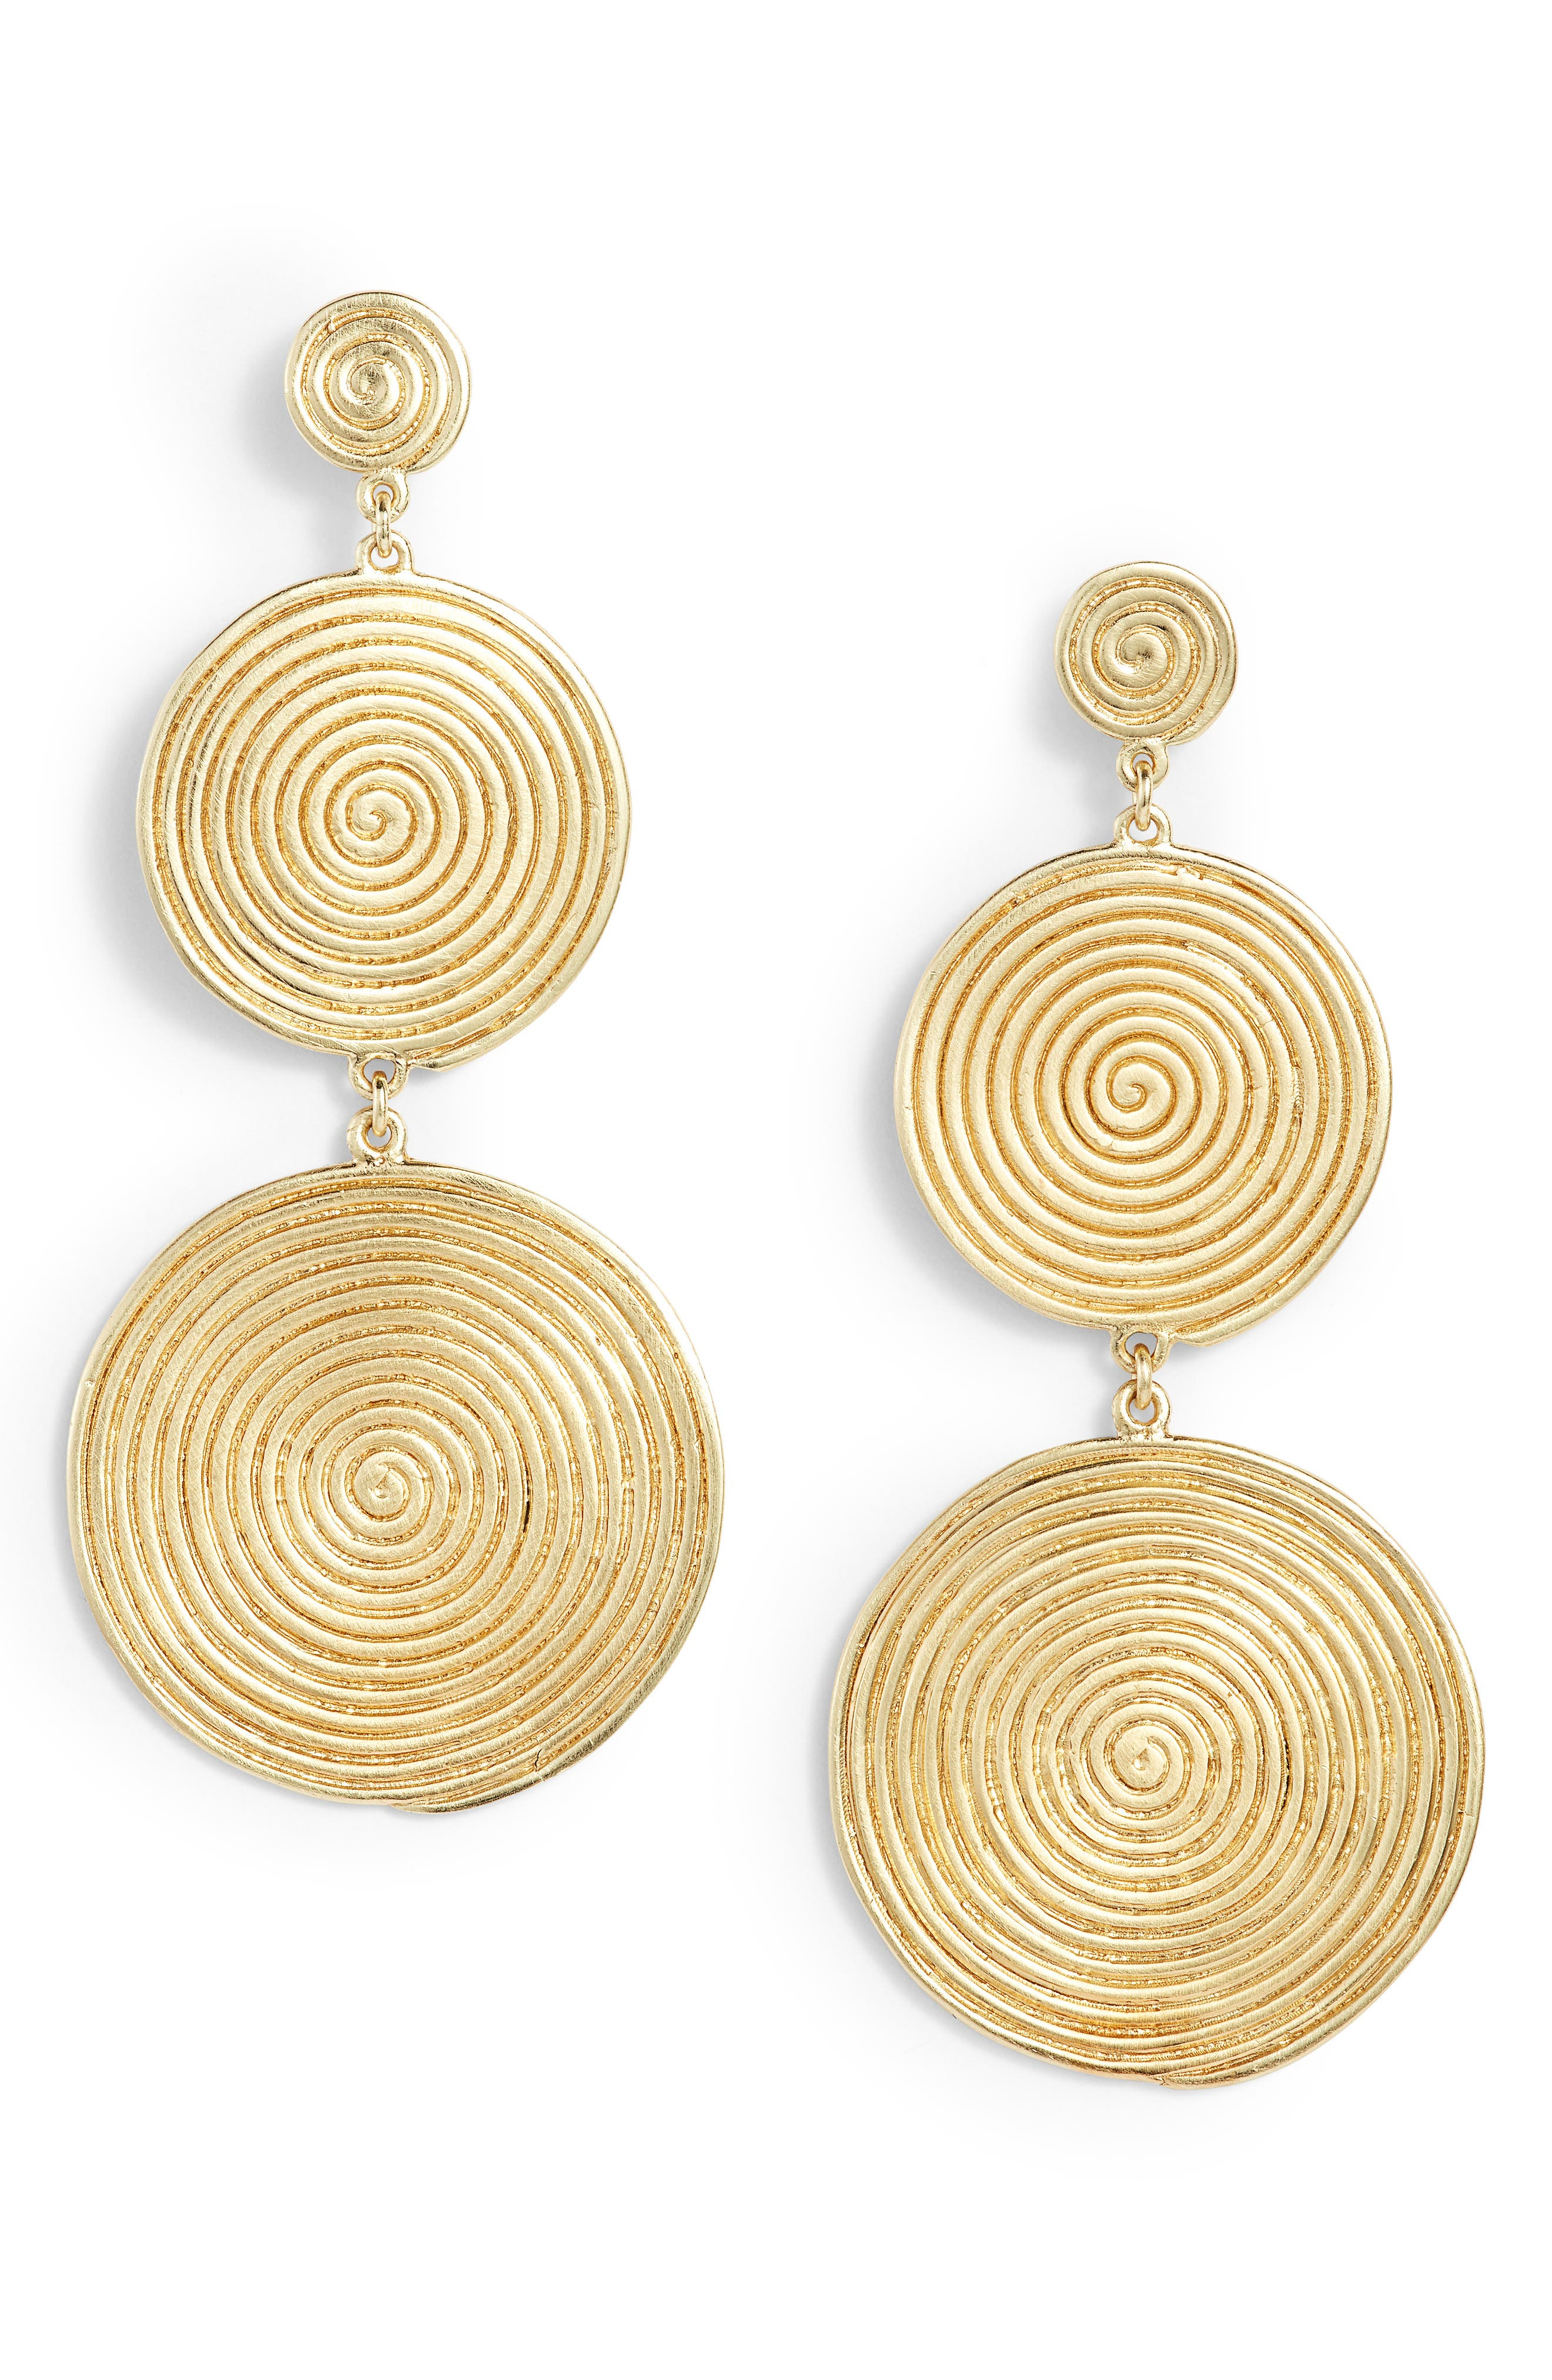 Sullivan - Lorelai Drop Earrings,                         Main,                         color, Yellow Gold